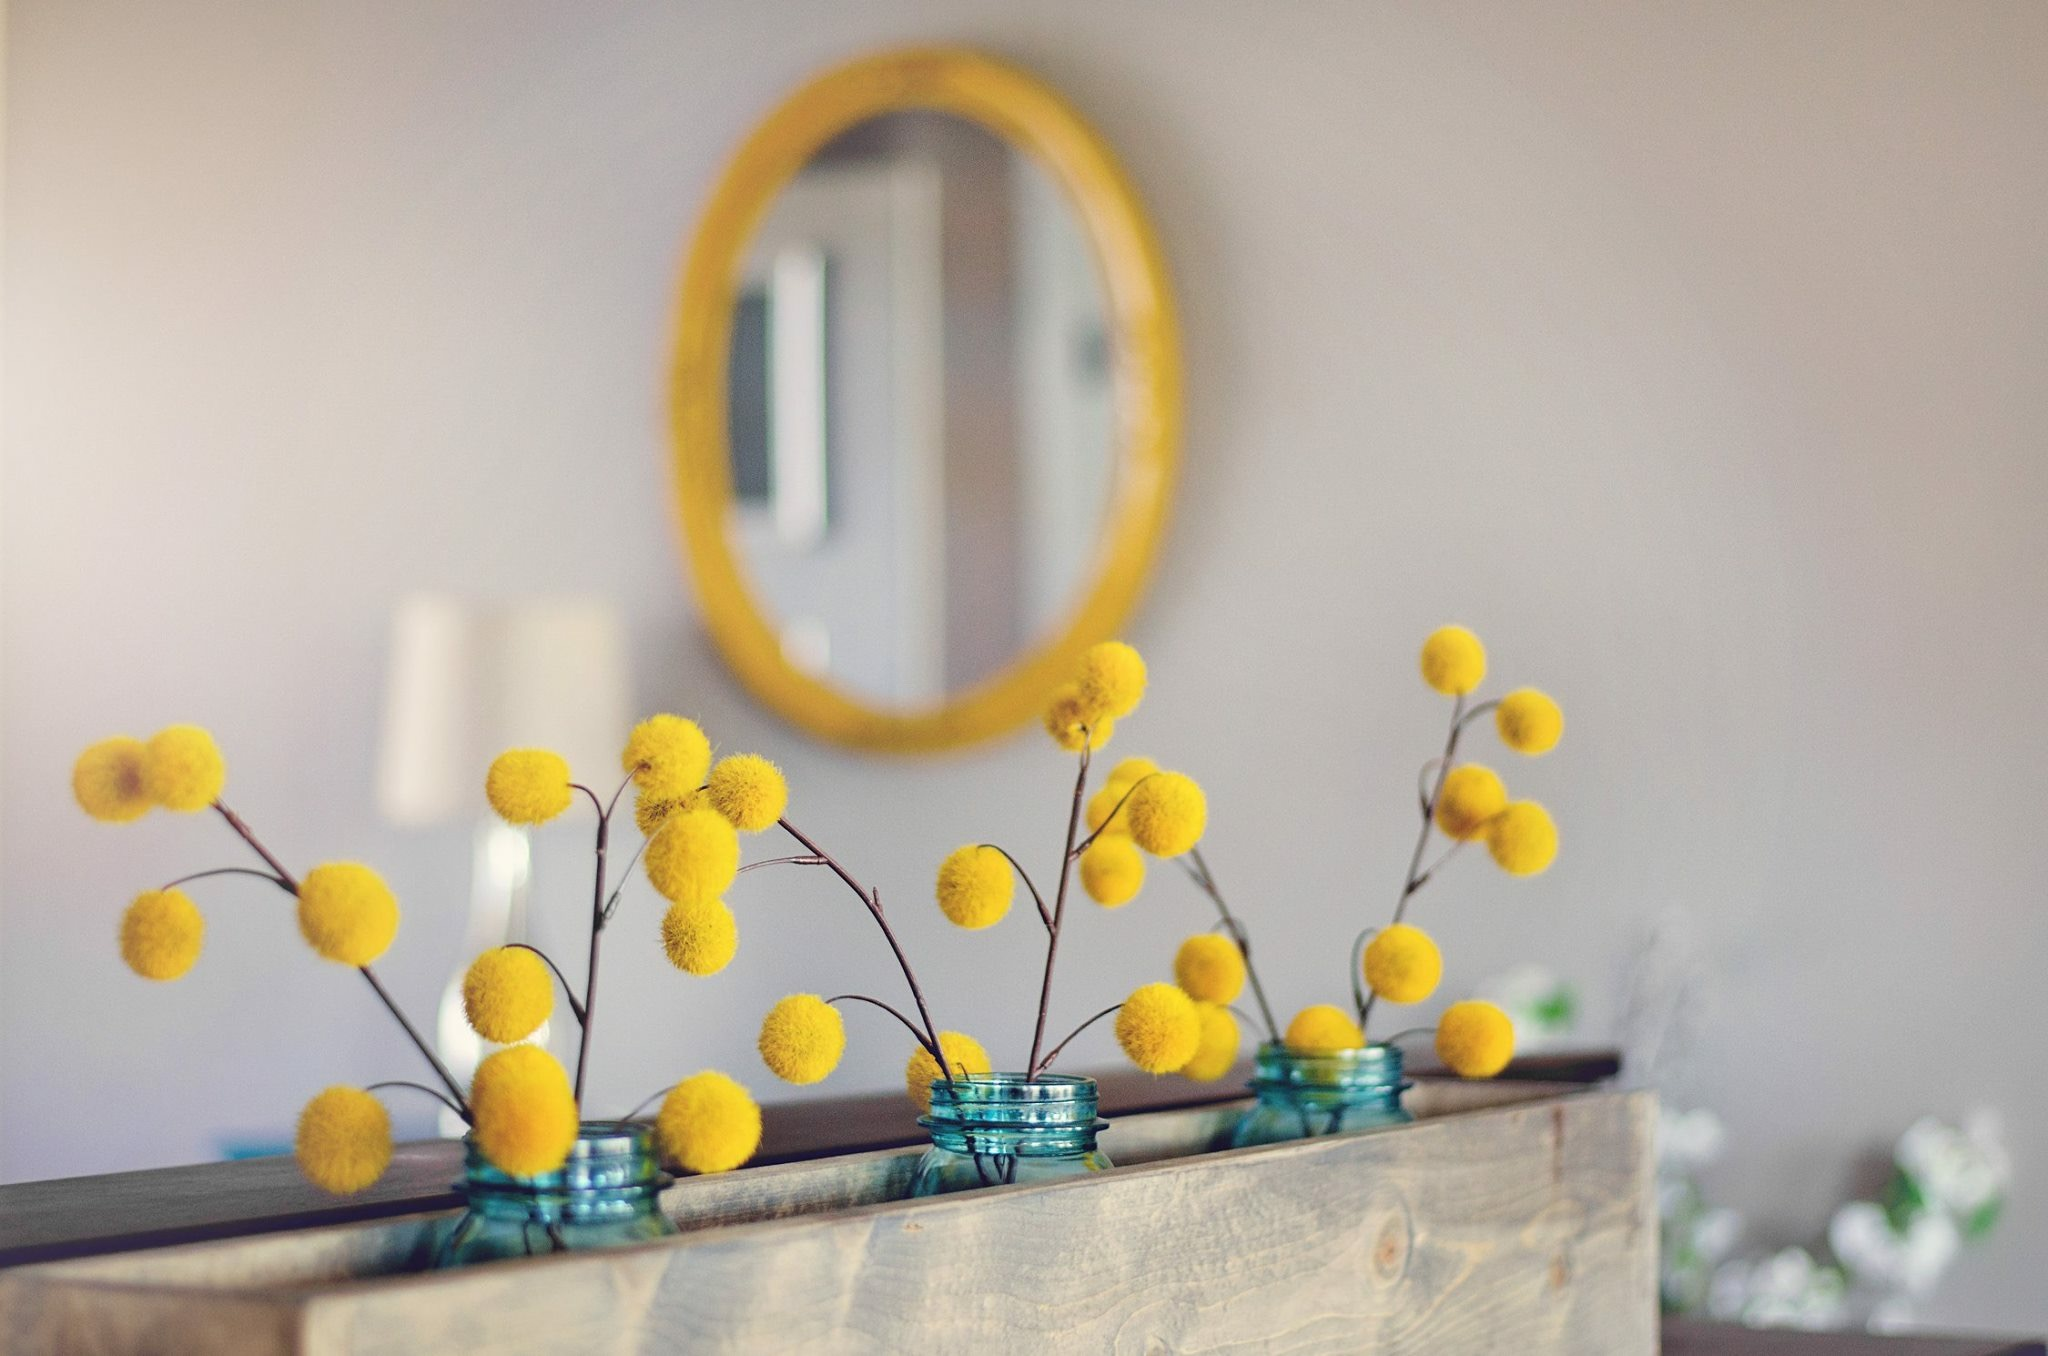 Yellow billy buttons in aqua ball jars with a yellow framed circular mirror in the background. RustopiaConsulting.com